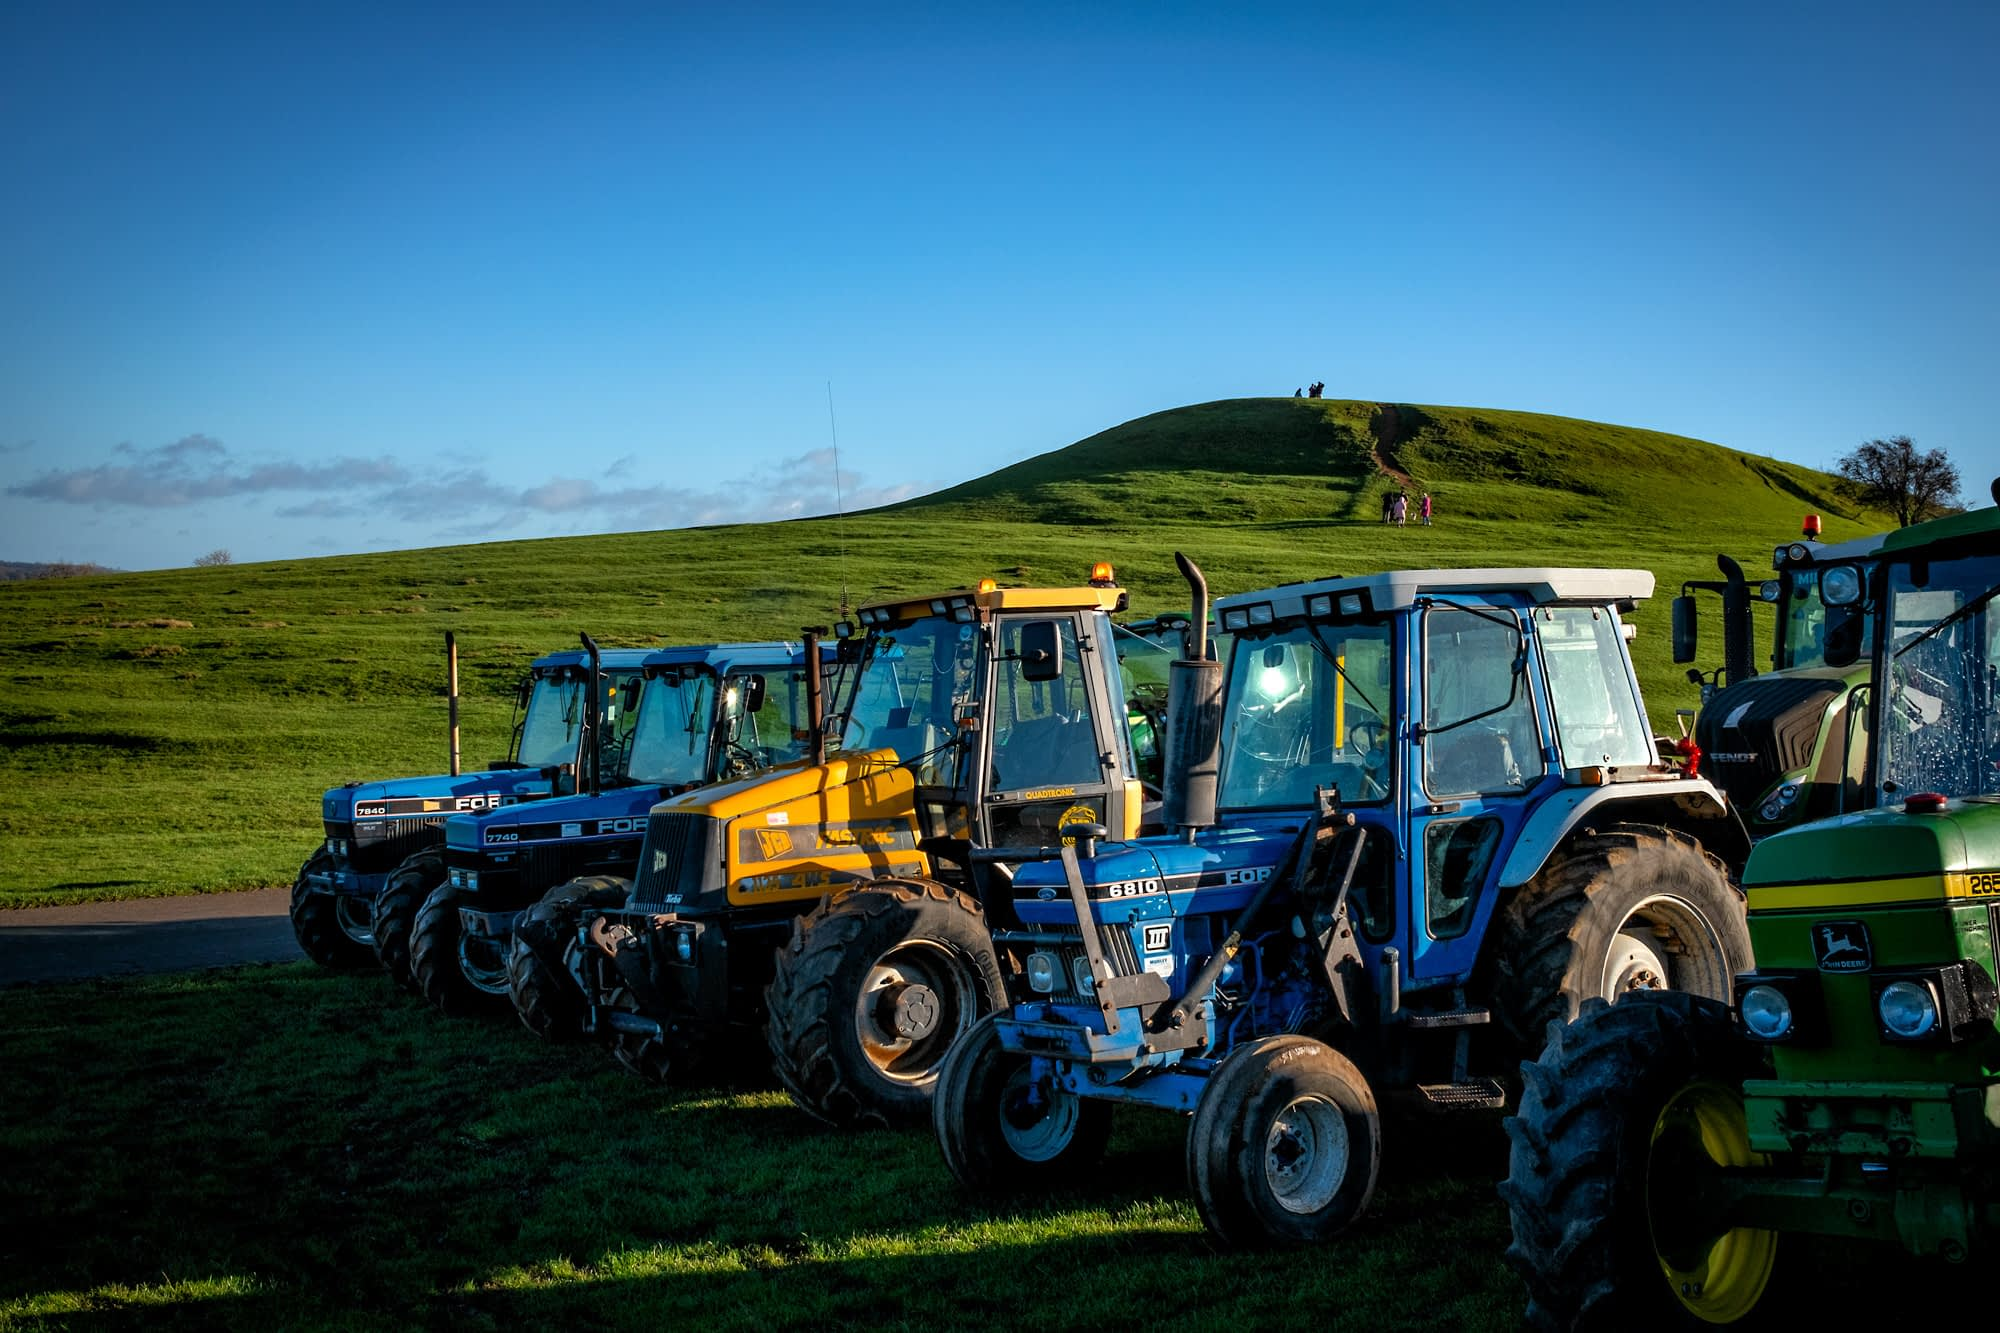 Lining up of tractors